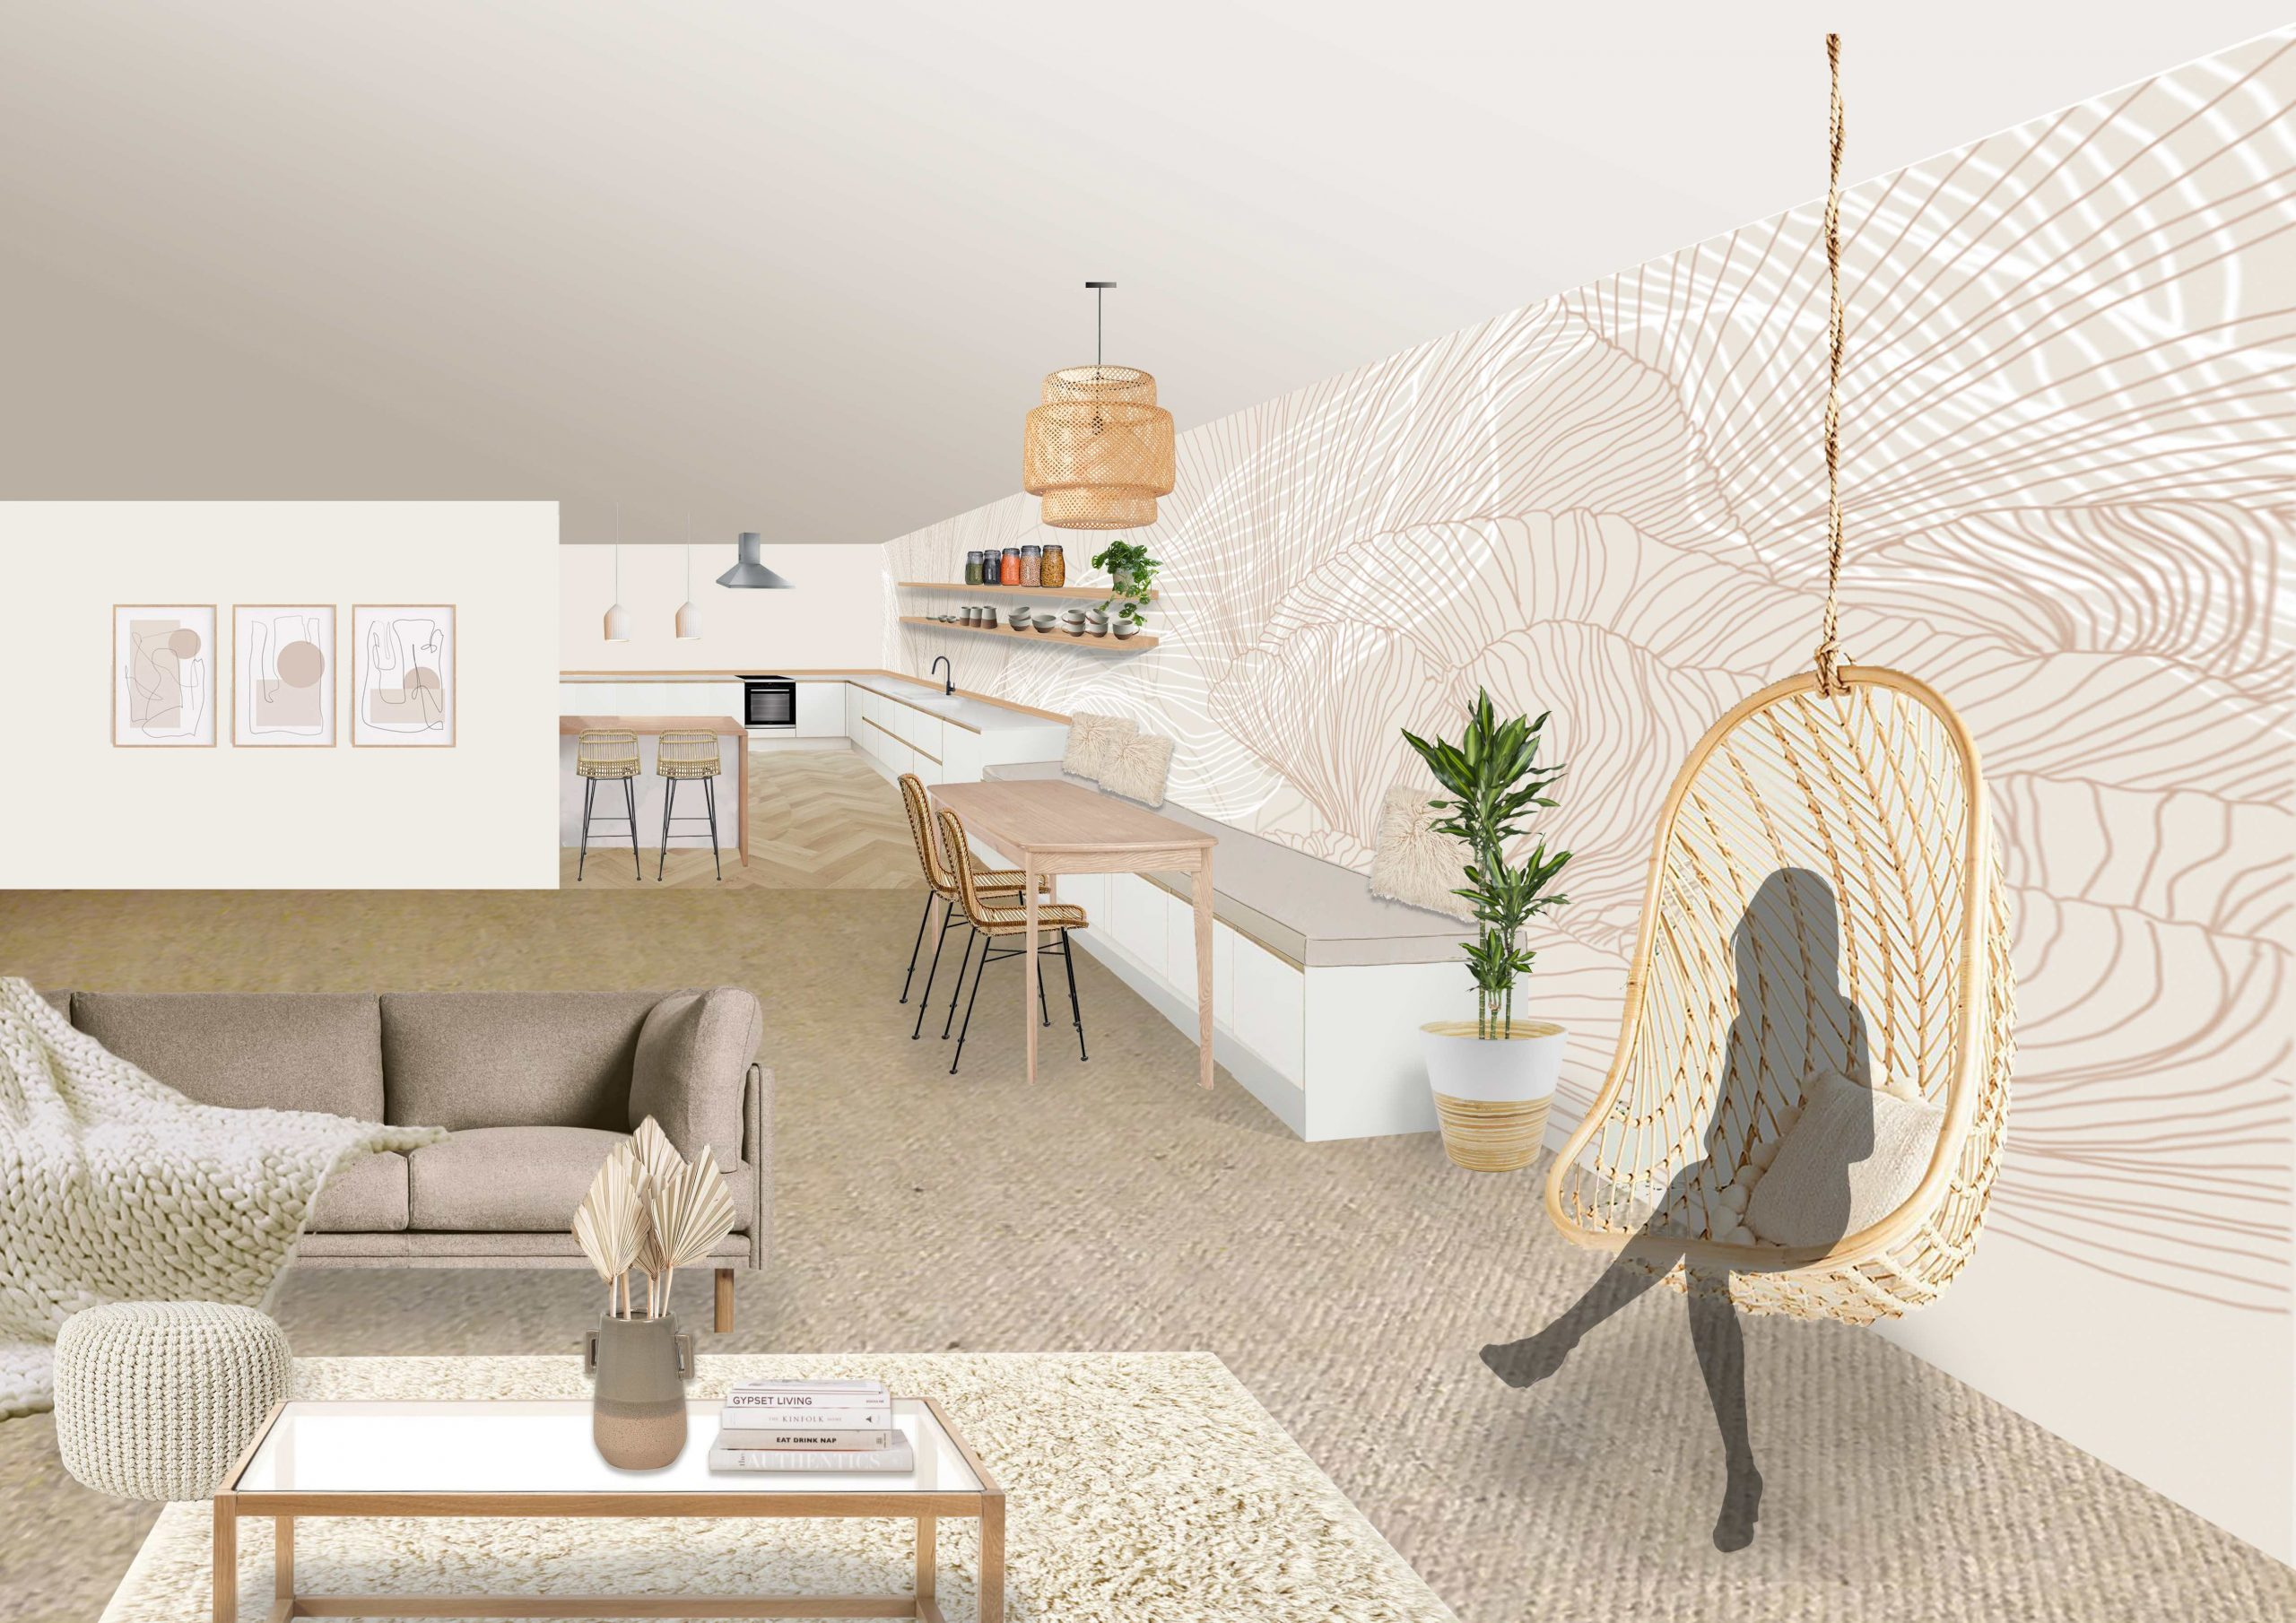 The Well-Being Apartment